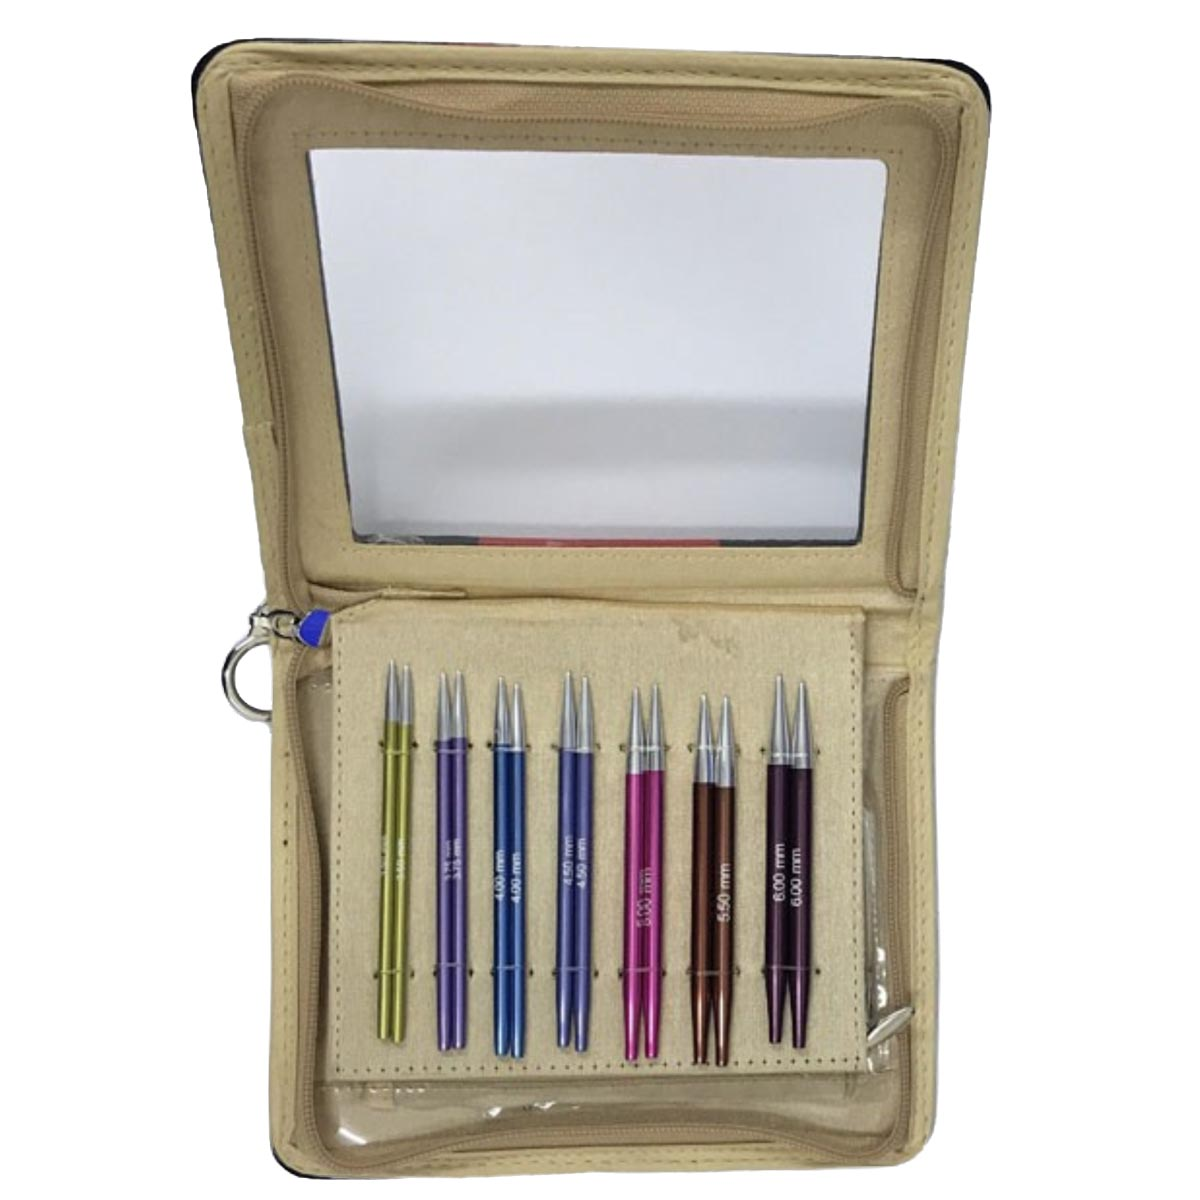 KnitPro 47410 ZING DELUXE Special Short 40cm Set of 7 Interchangeable Knitting Needles w/Cables & End Caps